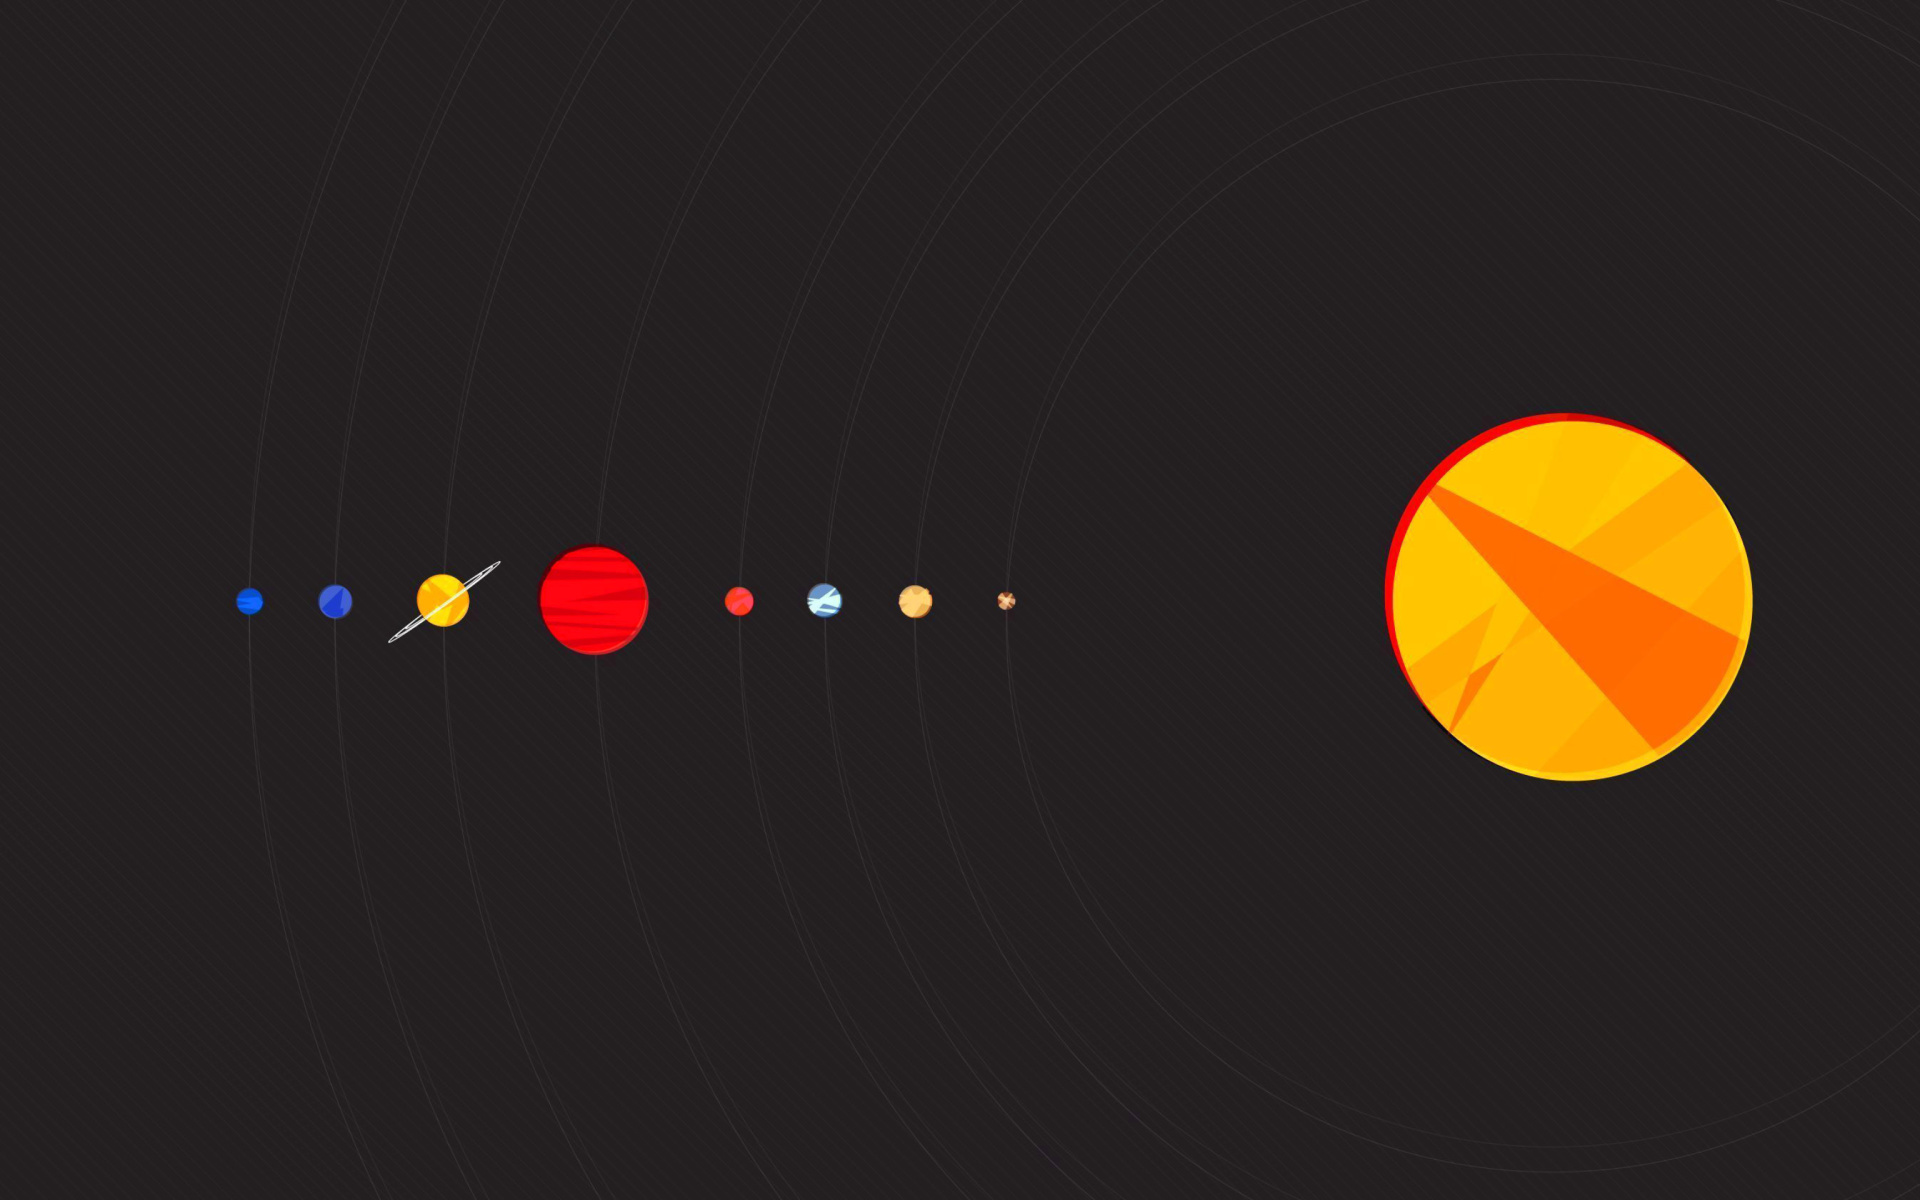 download solar system 1920x1080 - photo #8